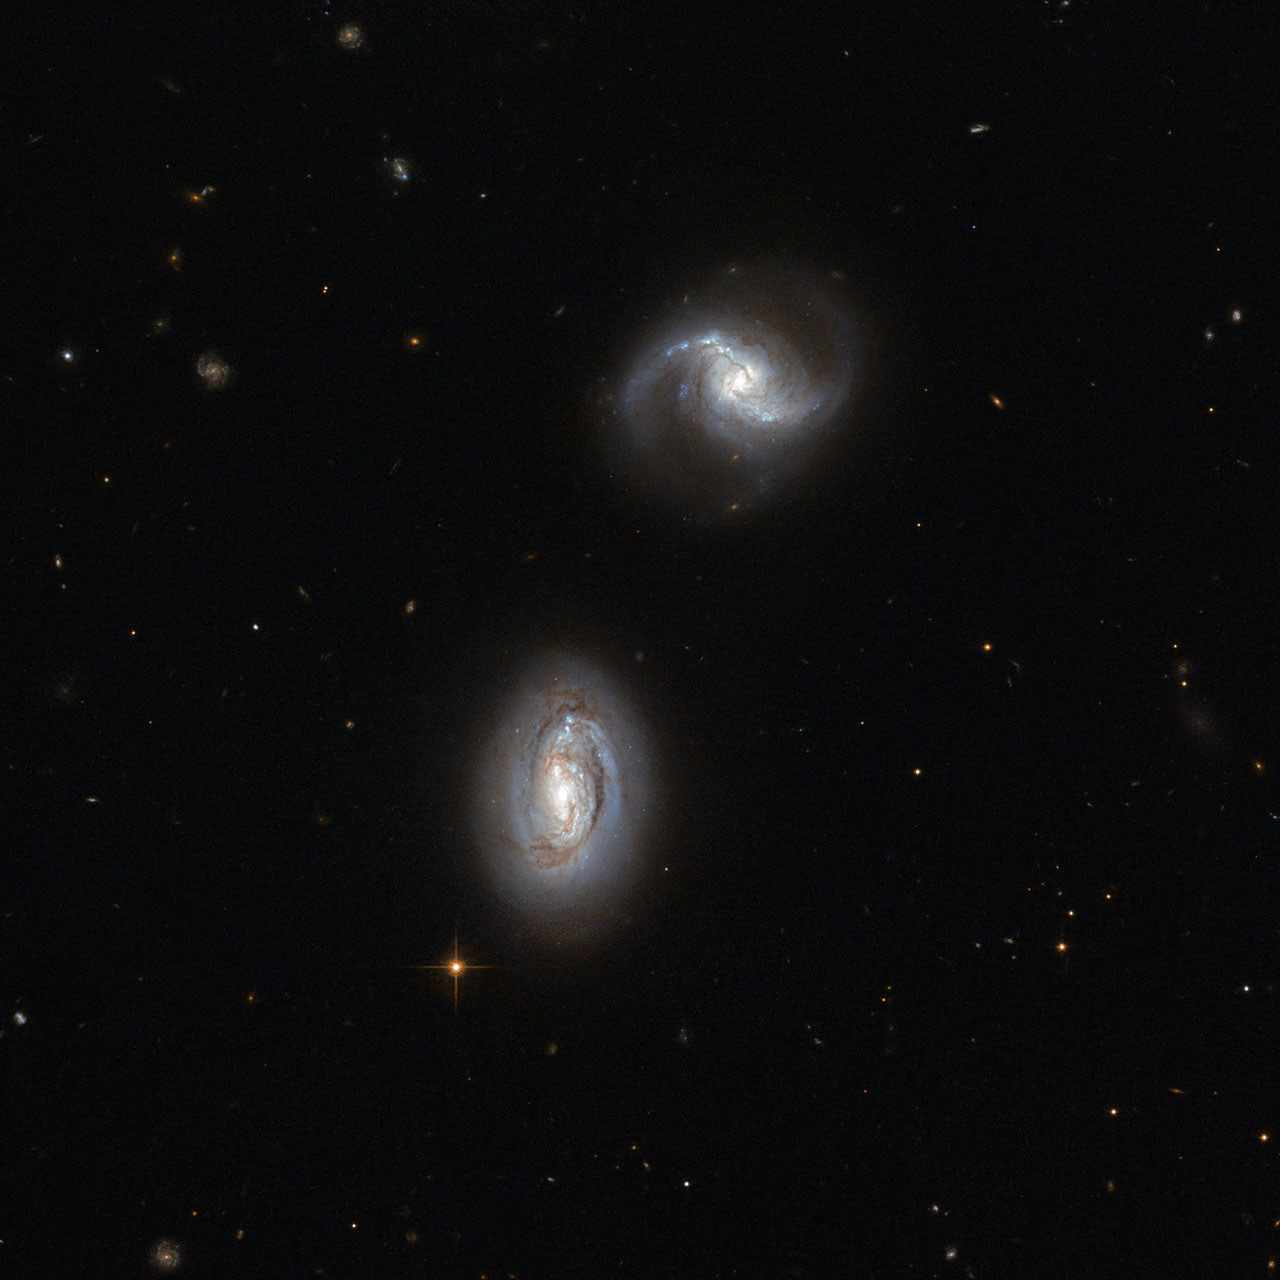 hubble galaxies pair - photo #1